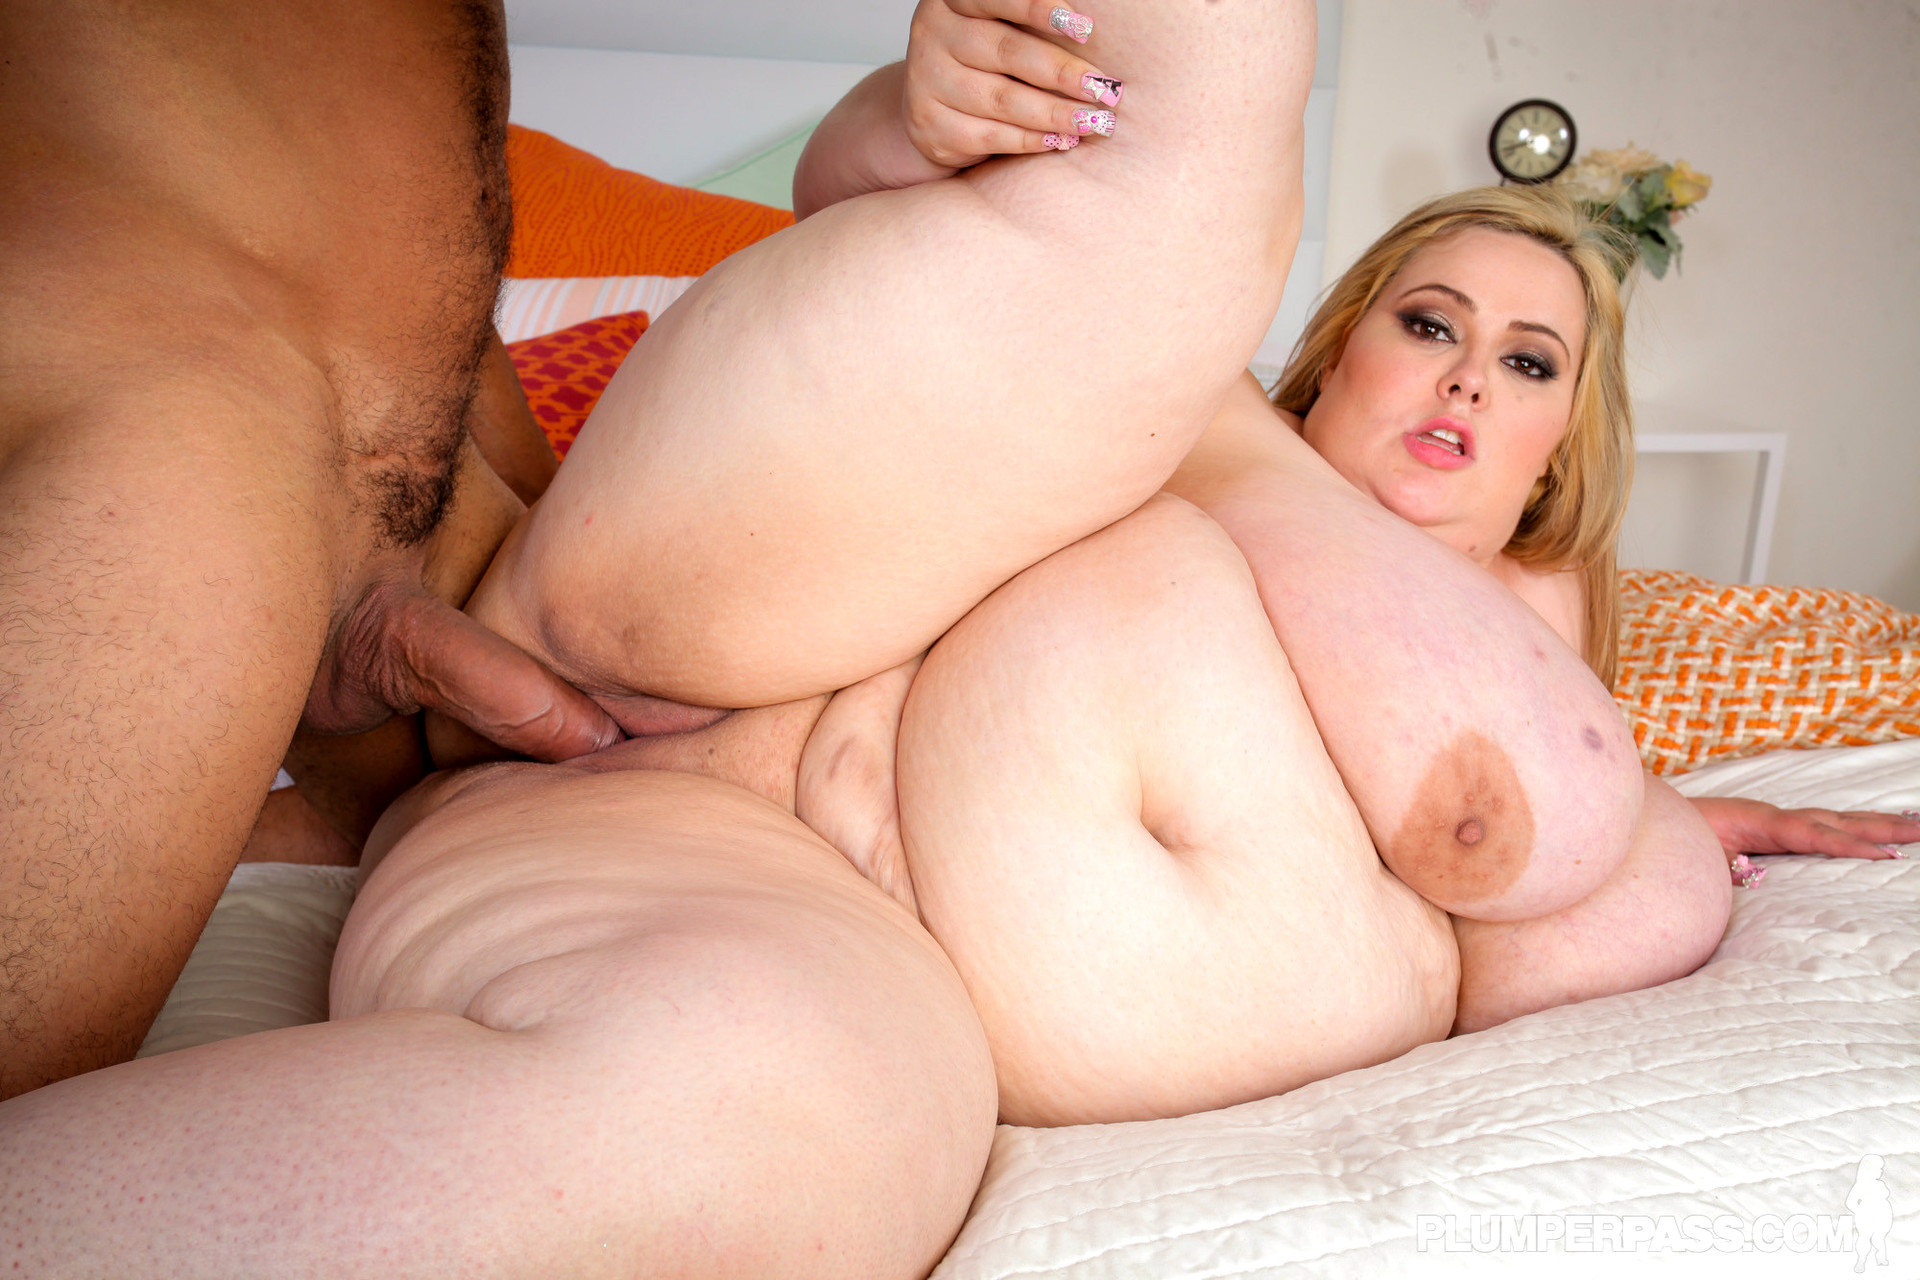 Fat women sex video — pic 11